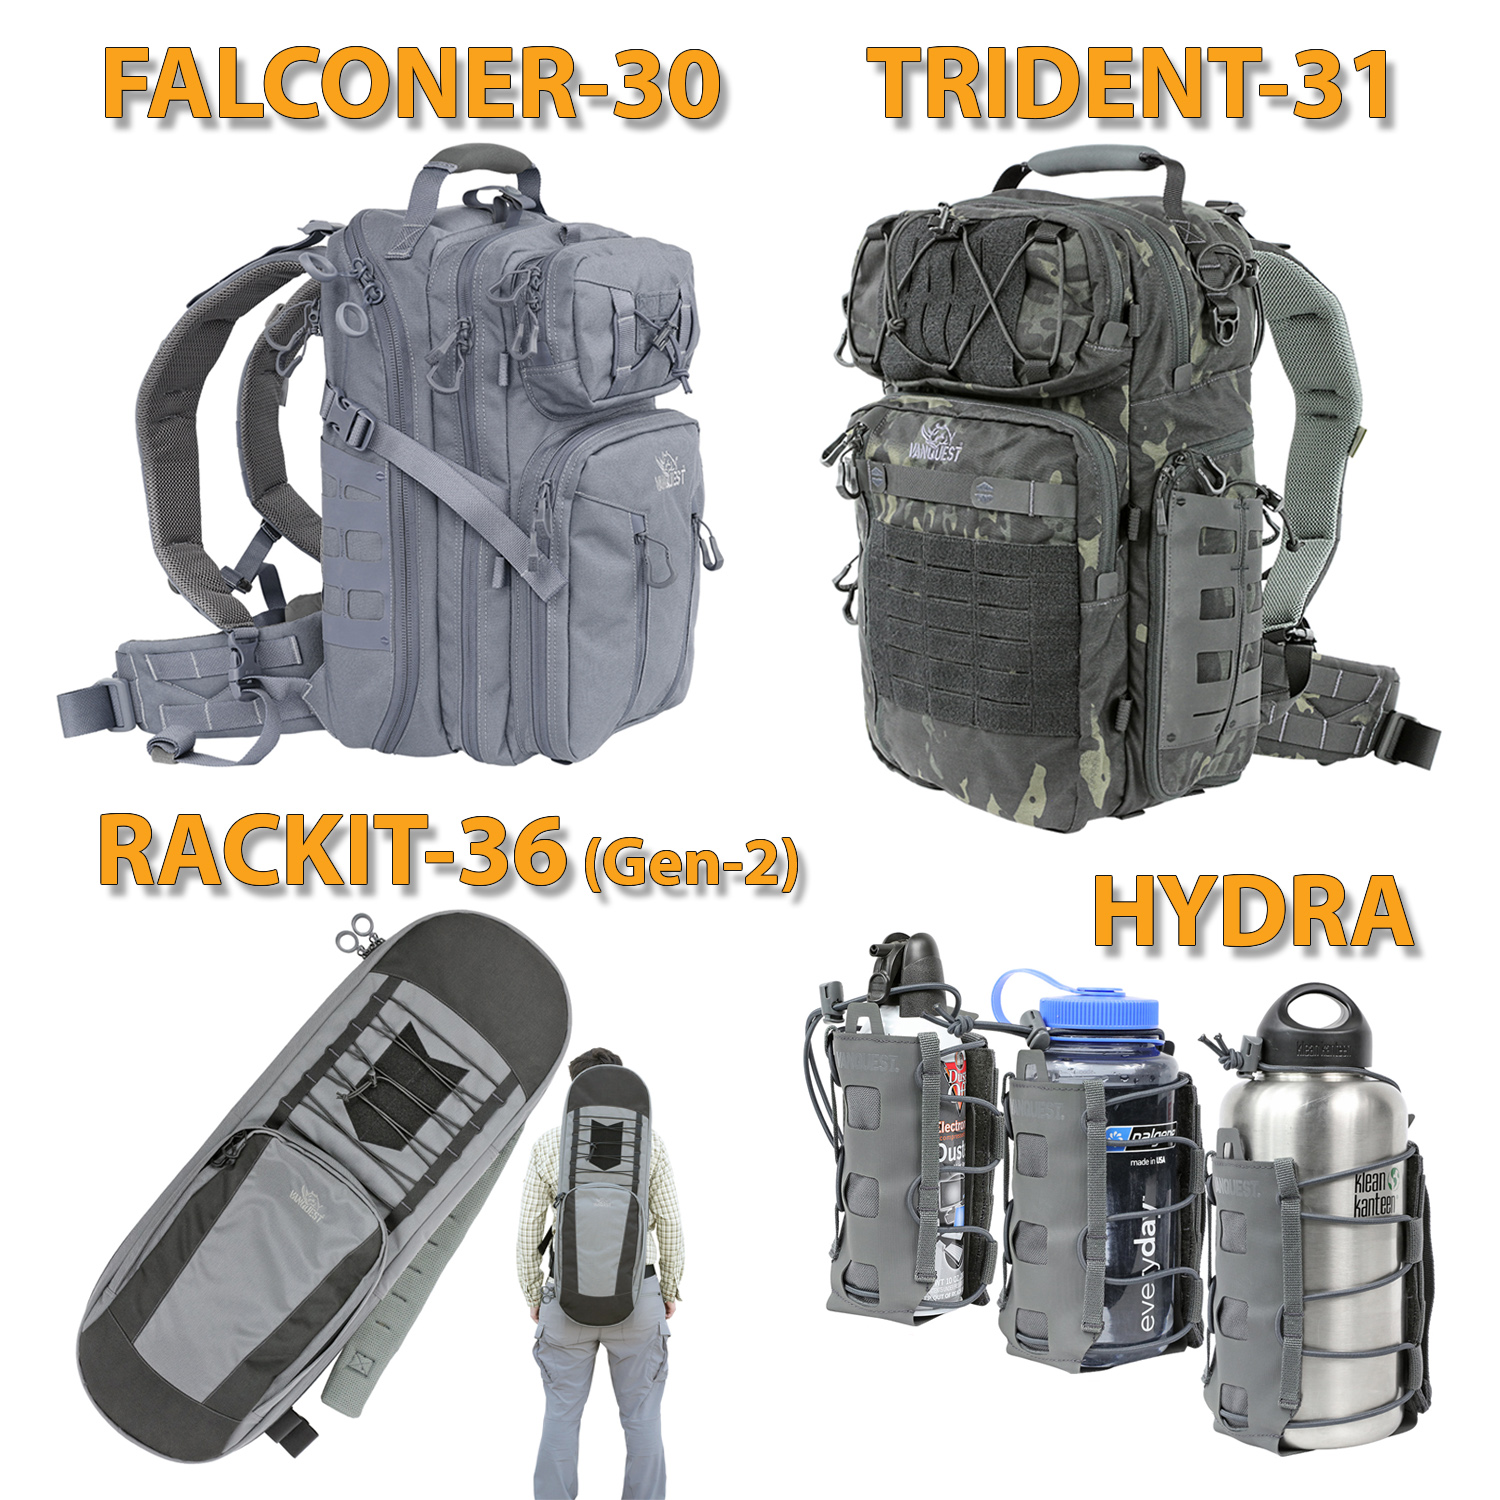 VANQUEST has new bags for you!